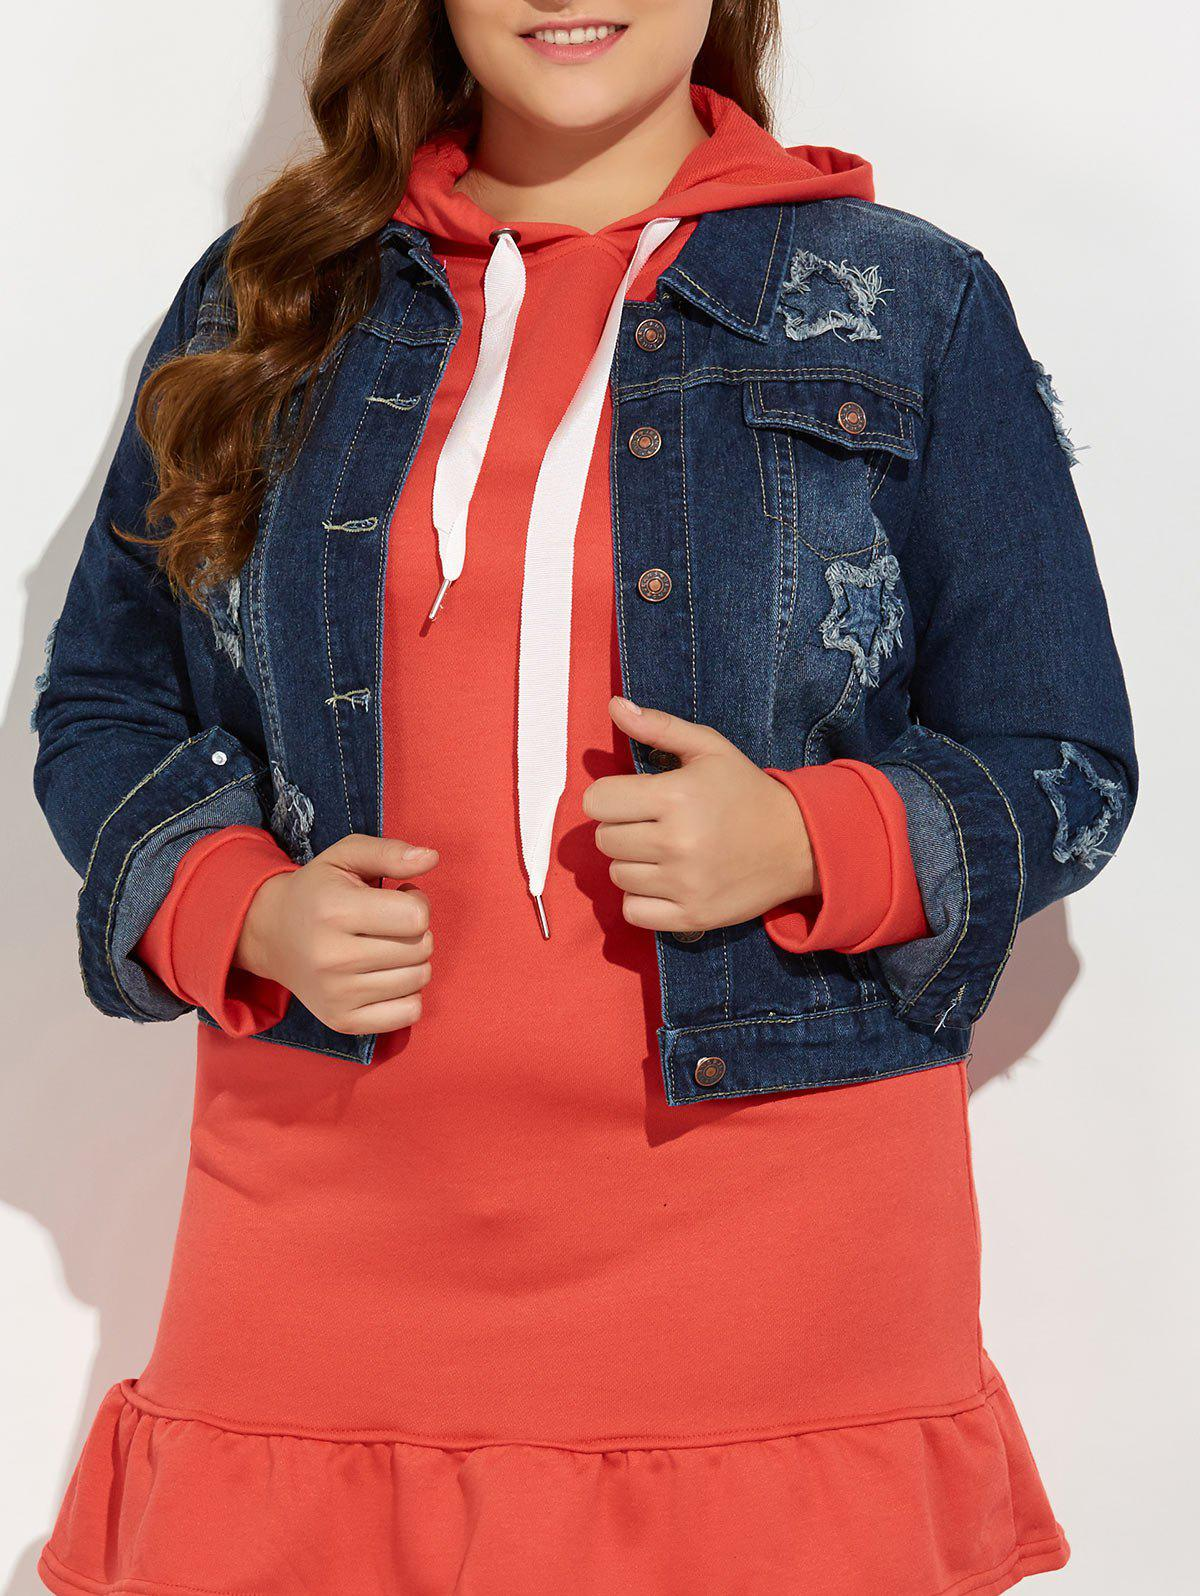 Plus Size Buttoned Star Graphic Jean JacketWOMEN<br><br>Size: 5XL; Color: BLUE; Clothes Type: Jackets; Material: Jeans; Type: Slim; Shirt Length: Regular; Sleeve Length: Full; Collar: Turn-down Collar; Pattern Type: Star; Embellishment: Pockets; Style: Streetwear; Season: Fall,Spring; Weight: 0.720kg; Package Contents: 1 x Jacket;